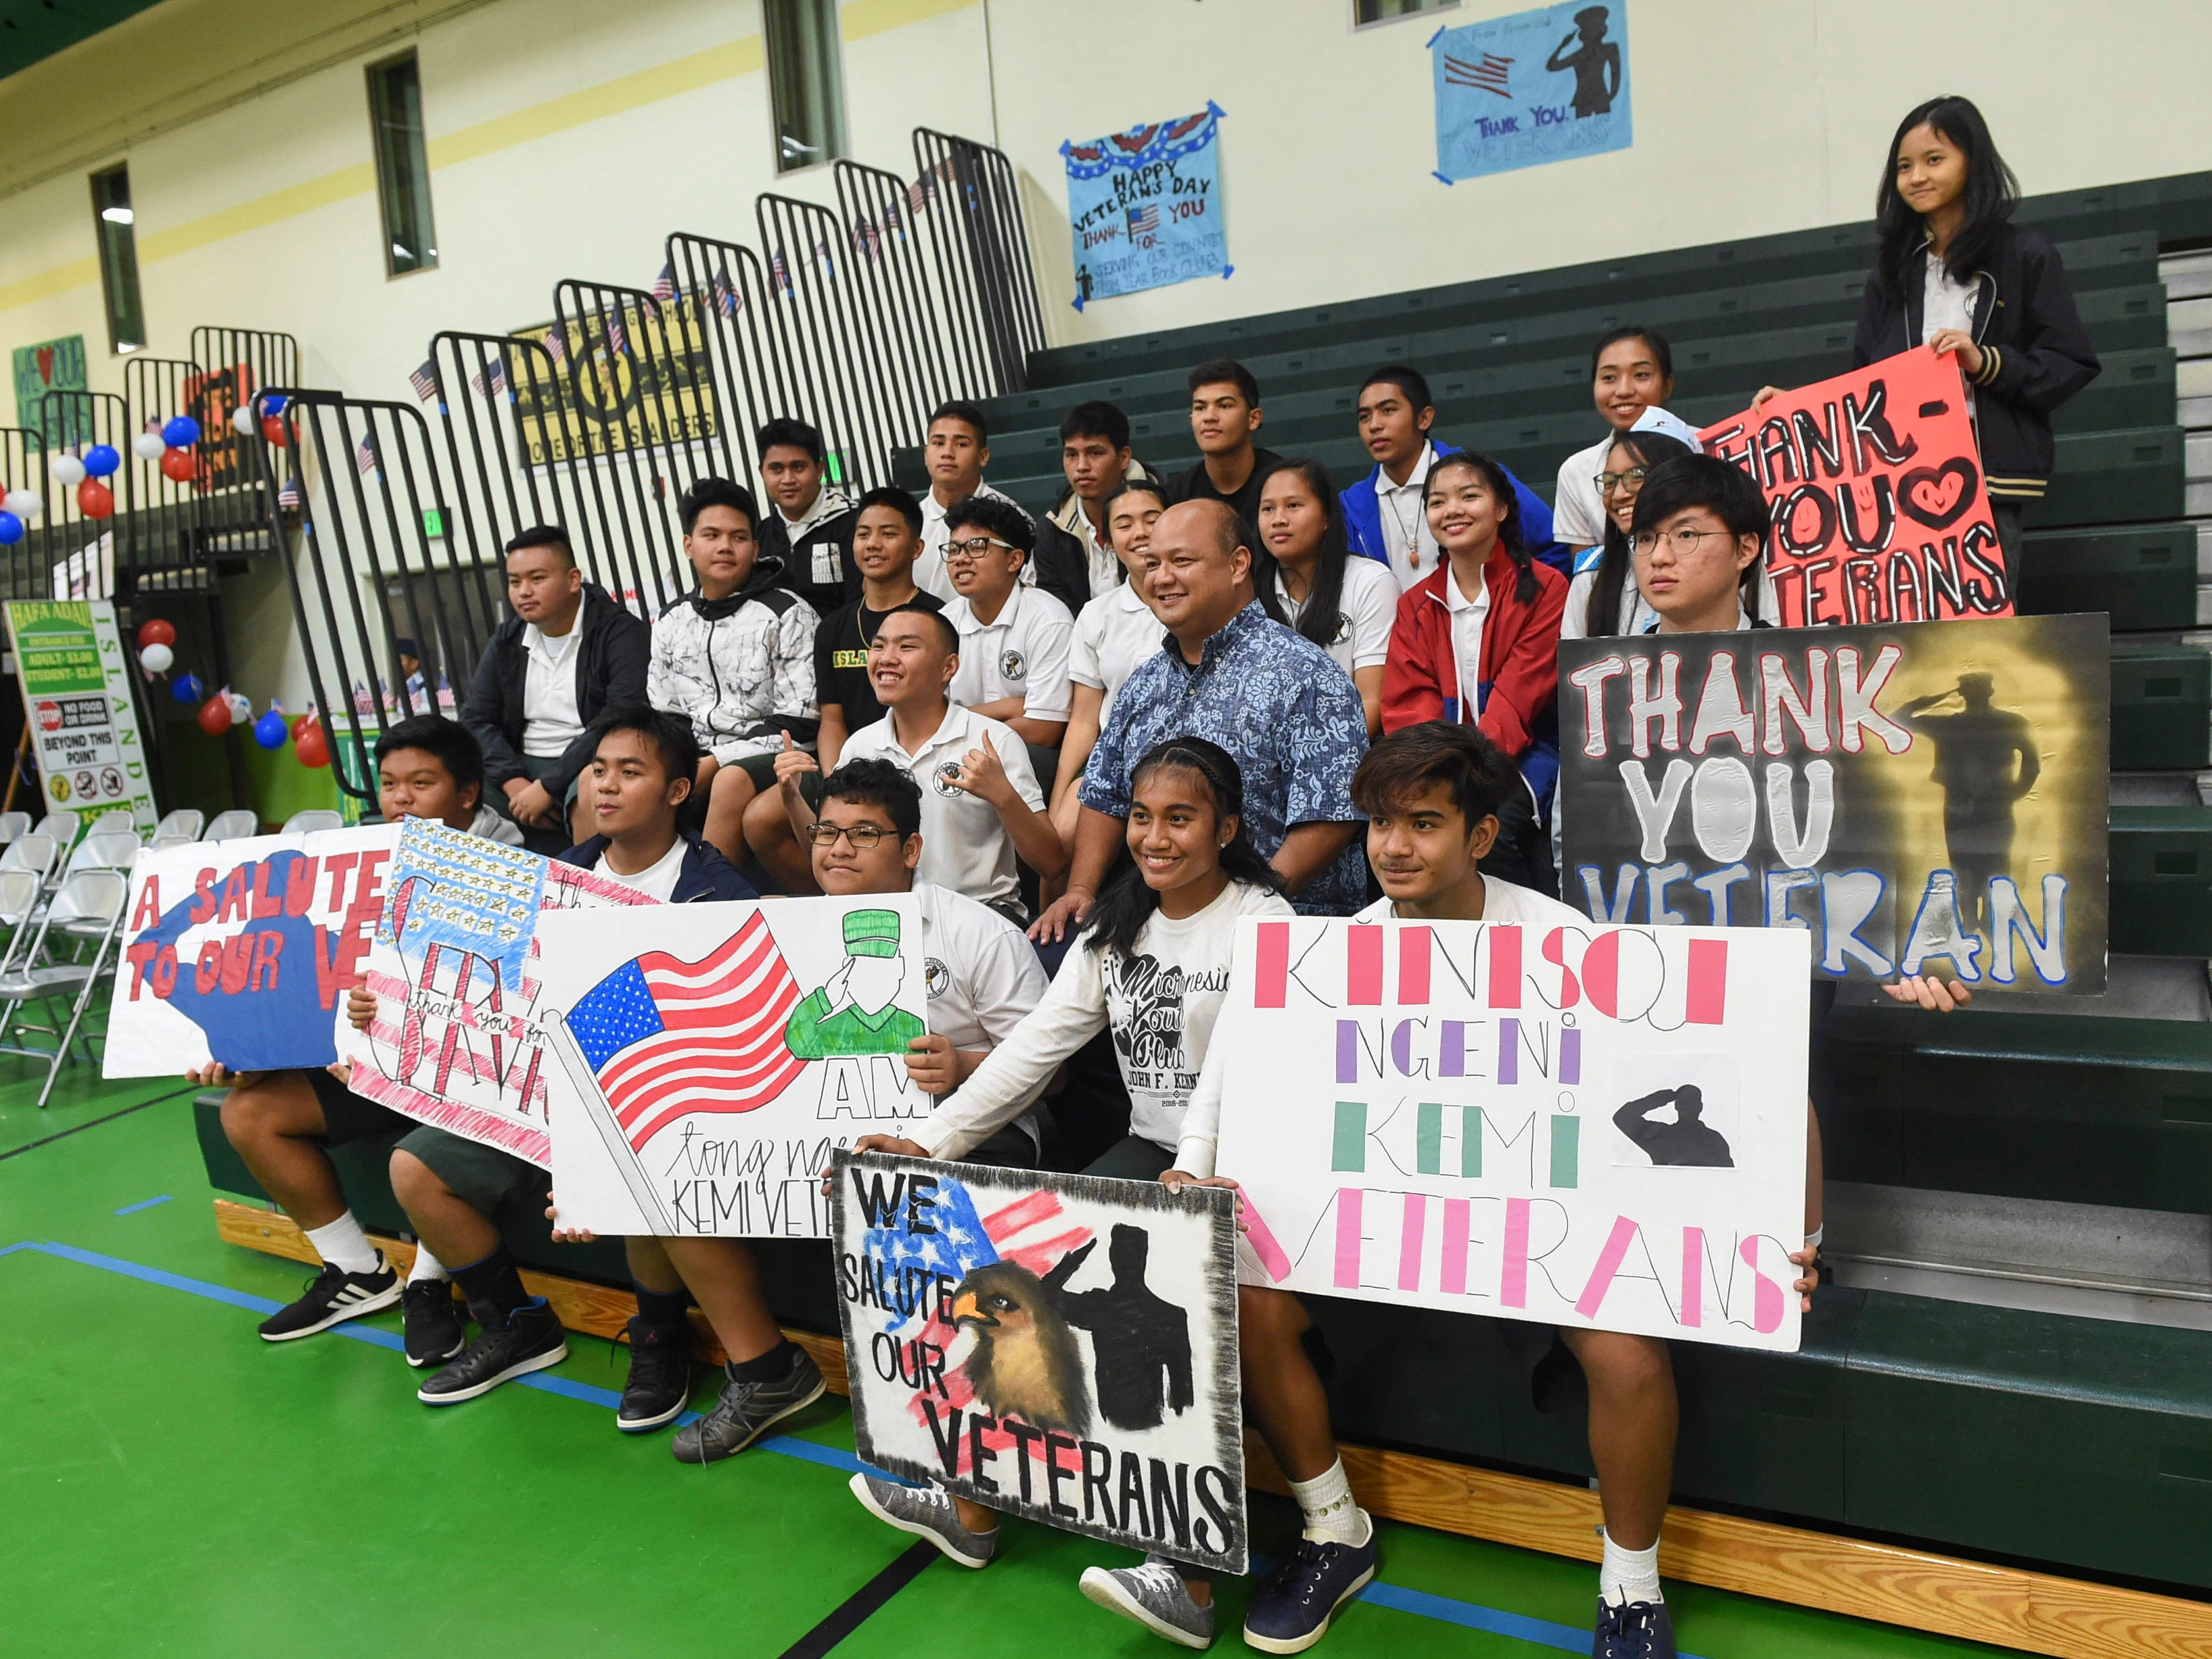 Guam Department of Education Superintendant Jon Fernandez takes a photo with John F. Kennedy High School students after the JFK High School Veterans Recognition Ceremony, Nov. 9, 2018.